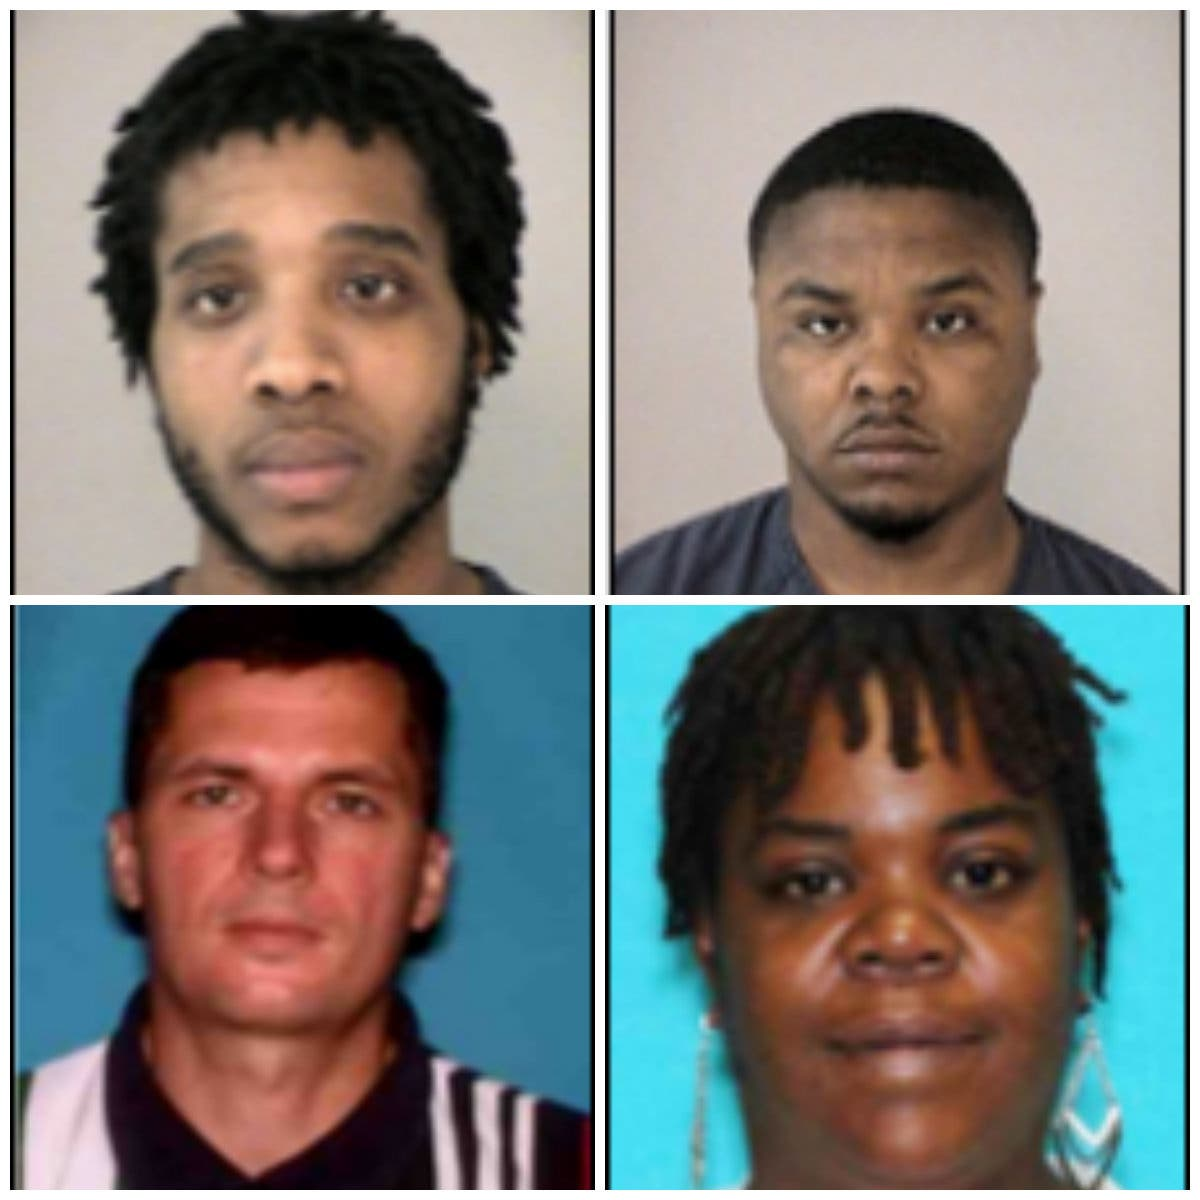 Fort Bend's Top 10 Most Wanted Fugitives | Sugar Land, TX Patch